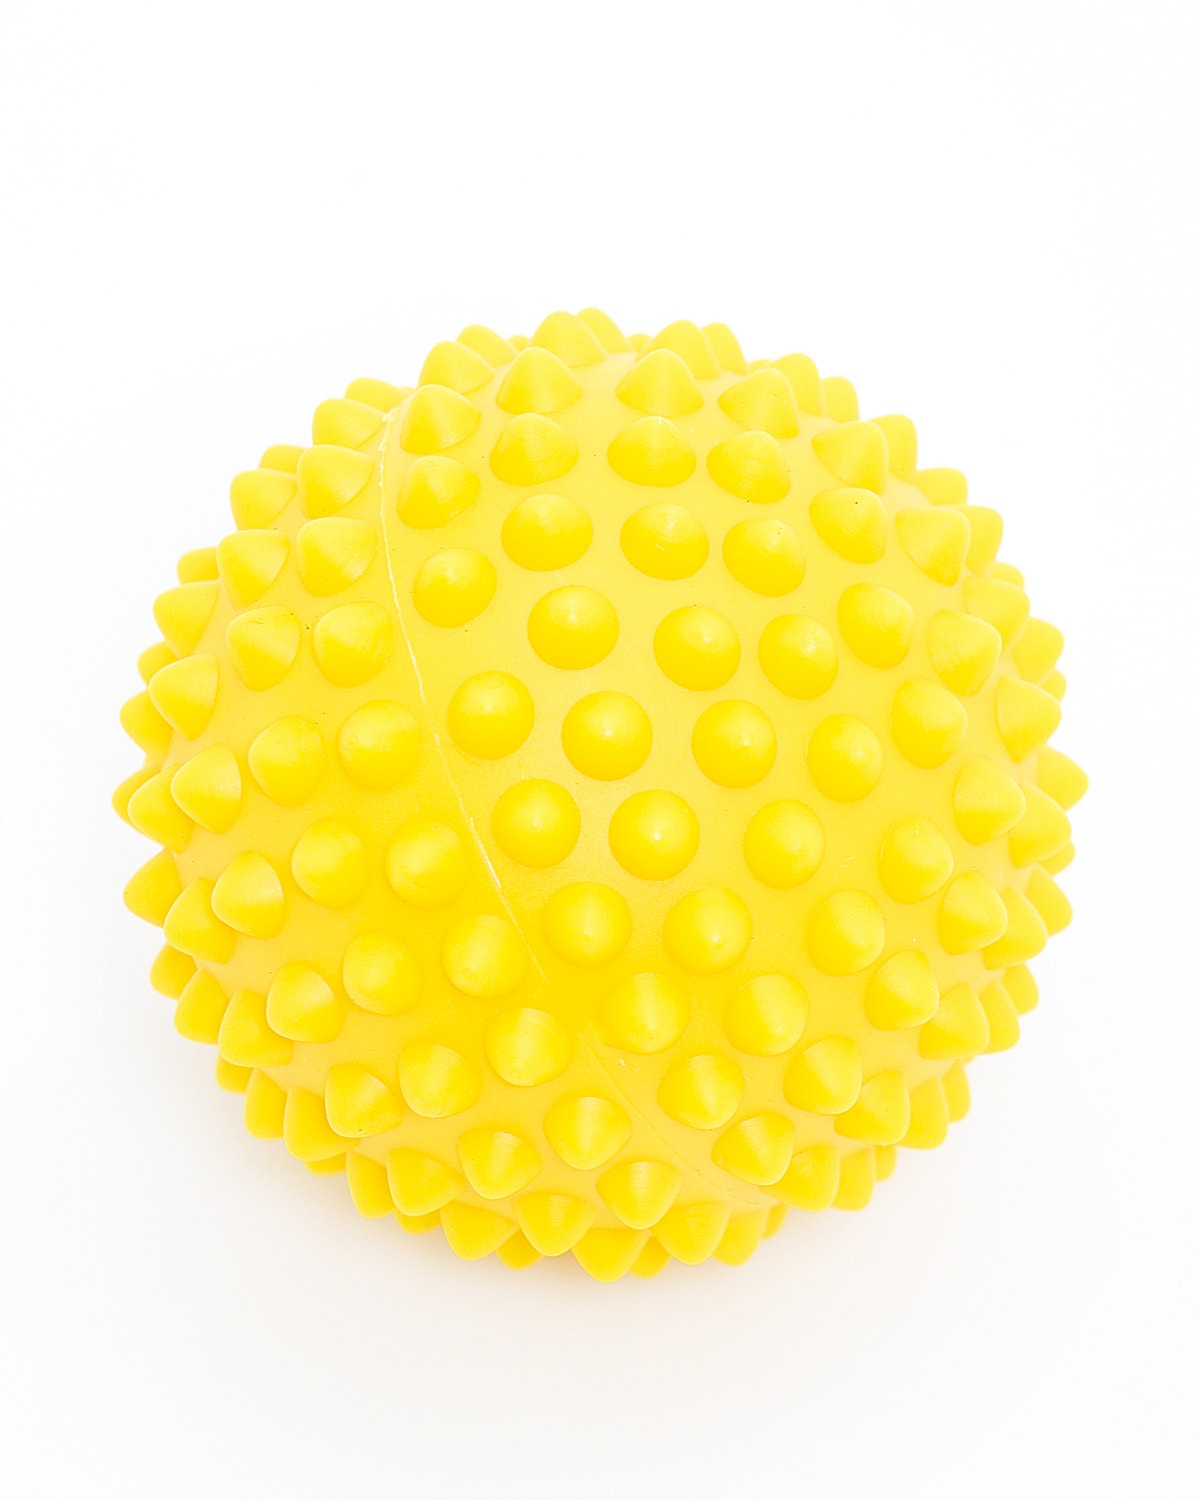 LEVITY Premium Fitness Spiky Trigger Ball 2